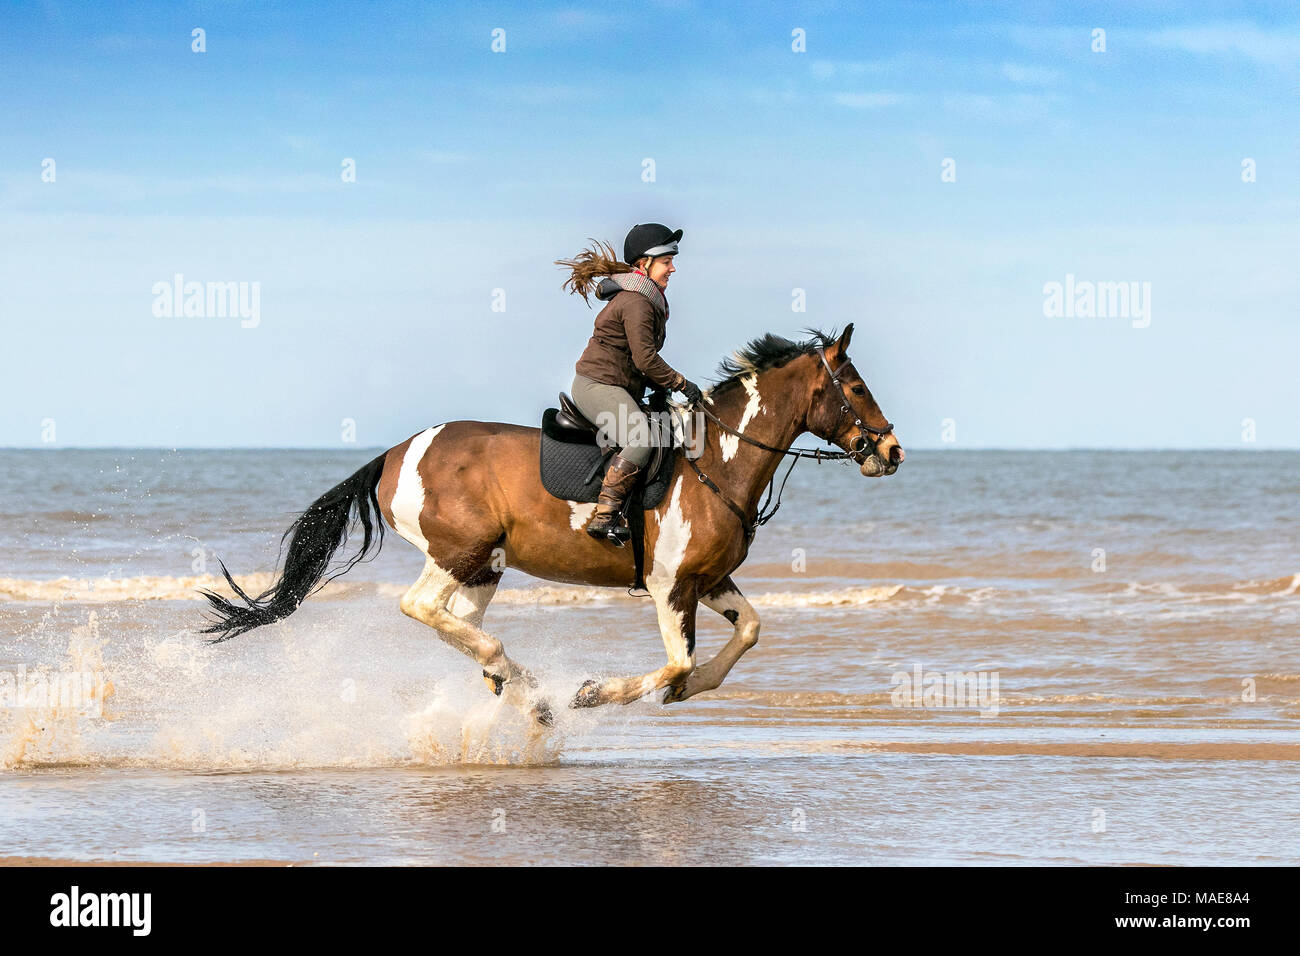 Horse Riding on Ainsdale Beach, Southport, Merseyside. 1st April 2018.  Bright Easter sunshine and blue skies are perfect weather conditions for Zoe Naysmith to take her beloved horse, 15 year old Casper, for a gallop along the golden sands & the the incoming tide on Ainsdale beach in Southport, Merseyside. Credit: Cernan Elias/Alamy Live News - Stock Image